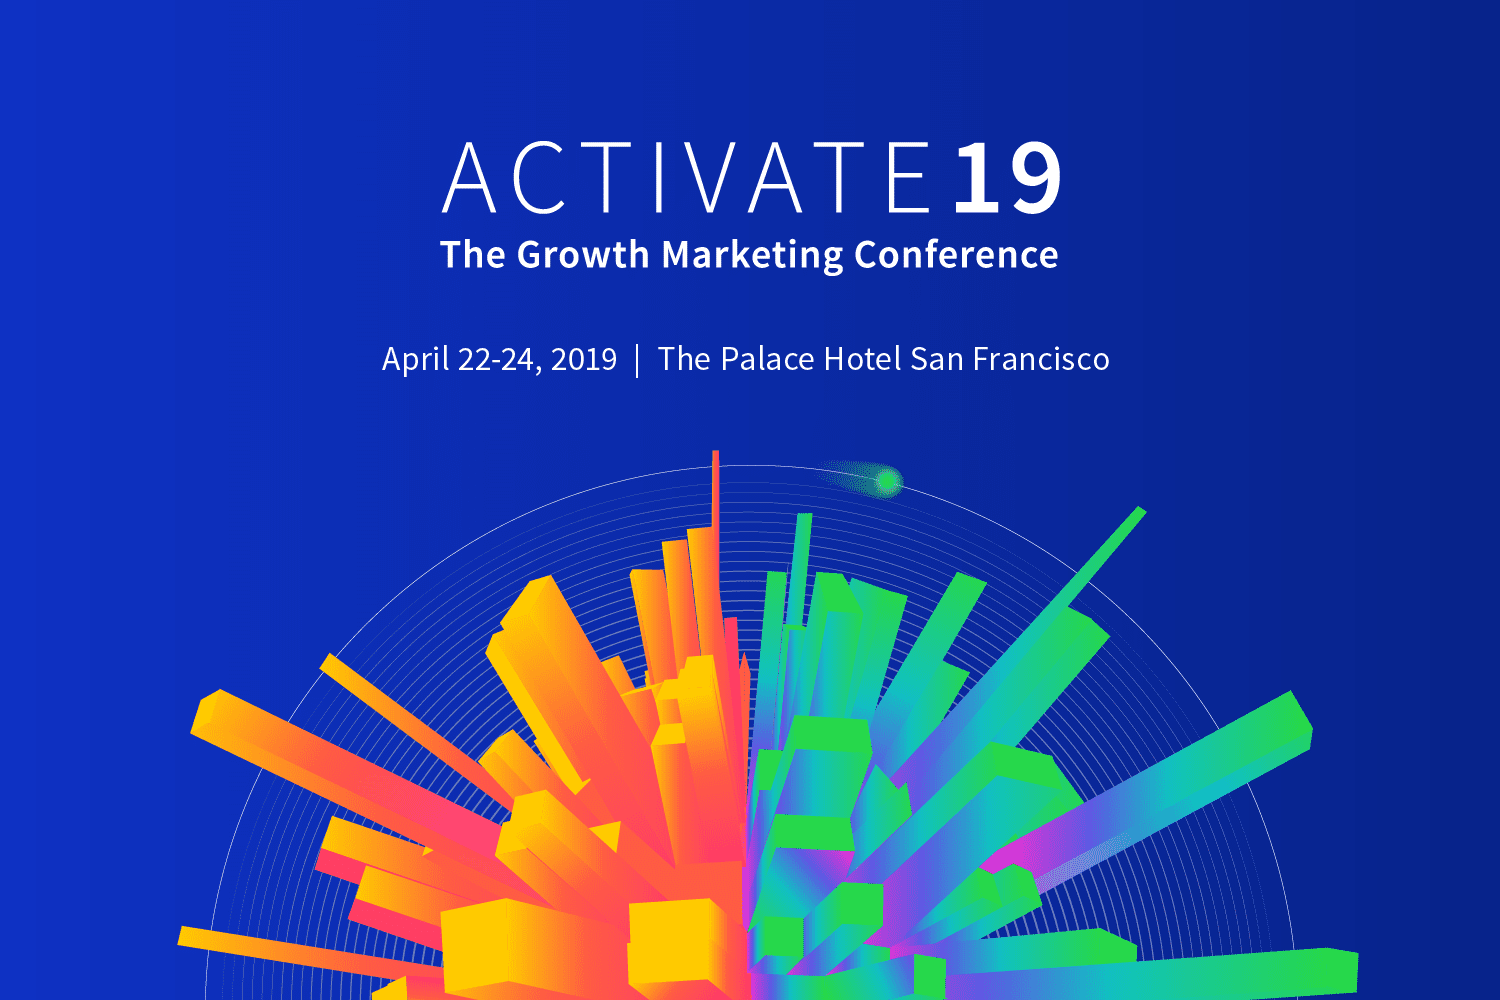 Register for Activate 19